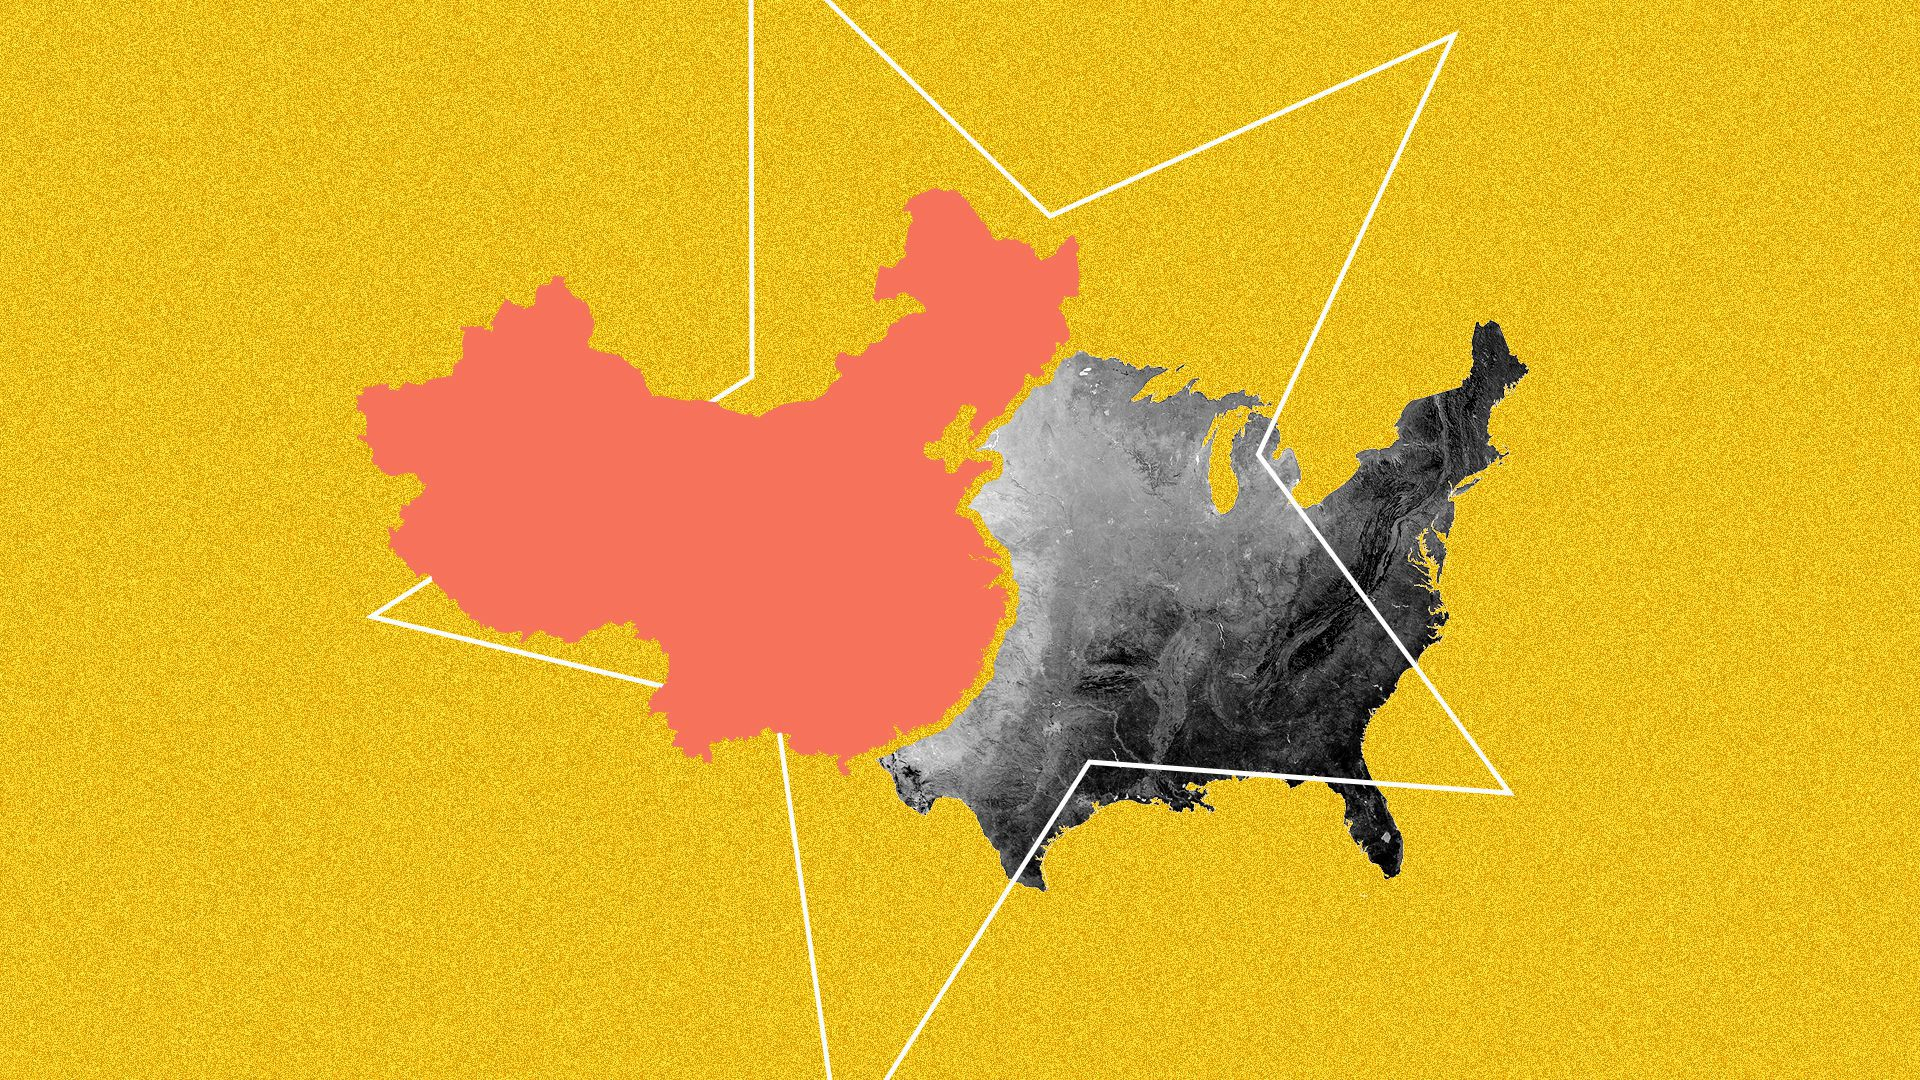 An illustration of China map and U.S. map overlapping.